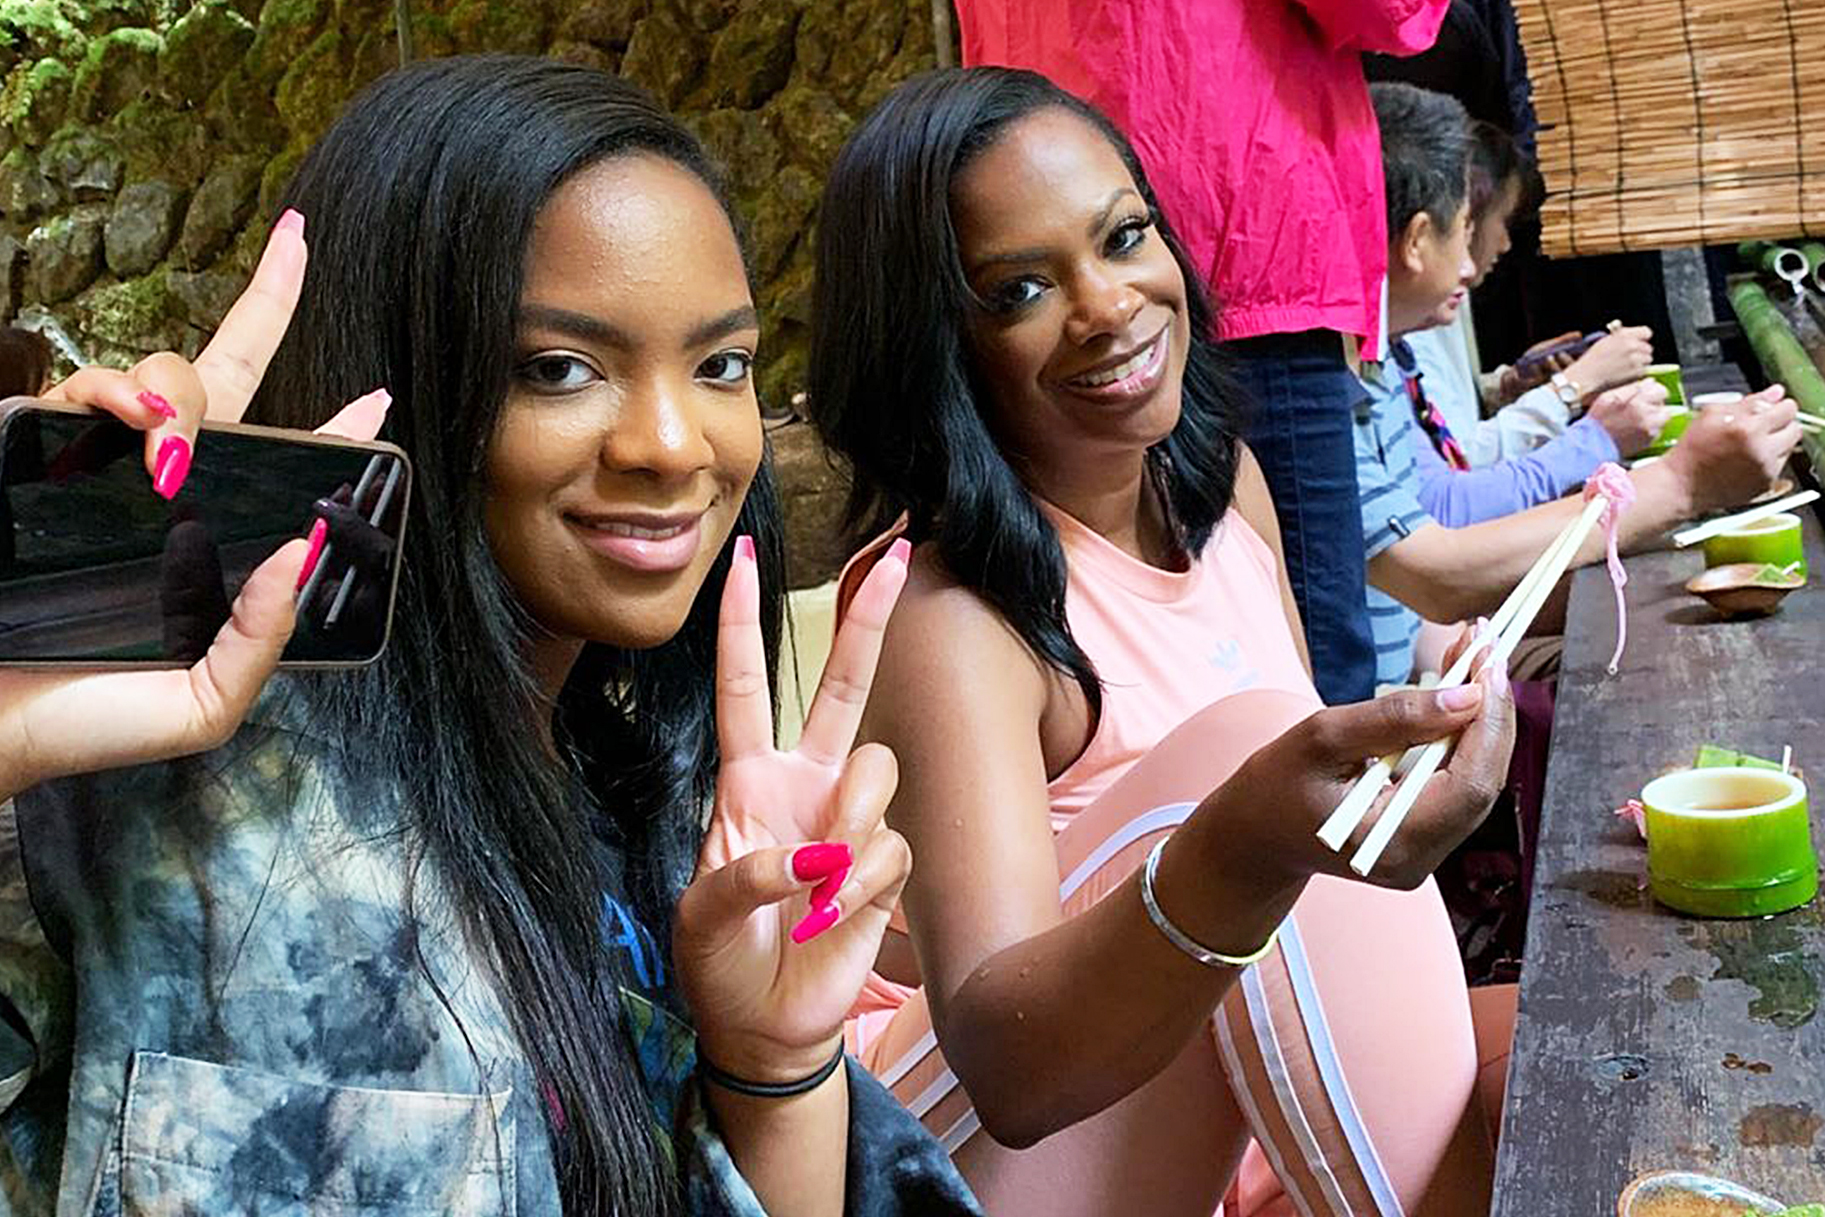 Kandi Burruss Gushes Over Her Daughter, Riley Burruss Who's Dressed As A Vampire